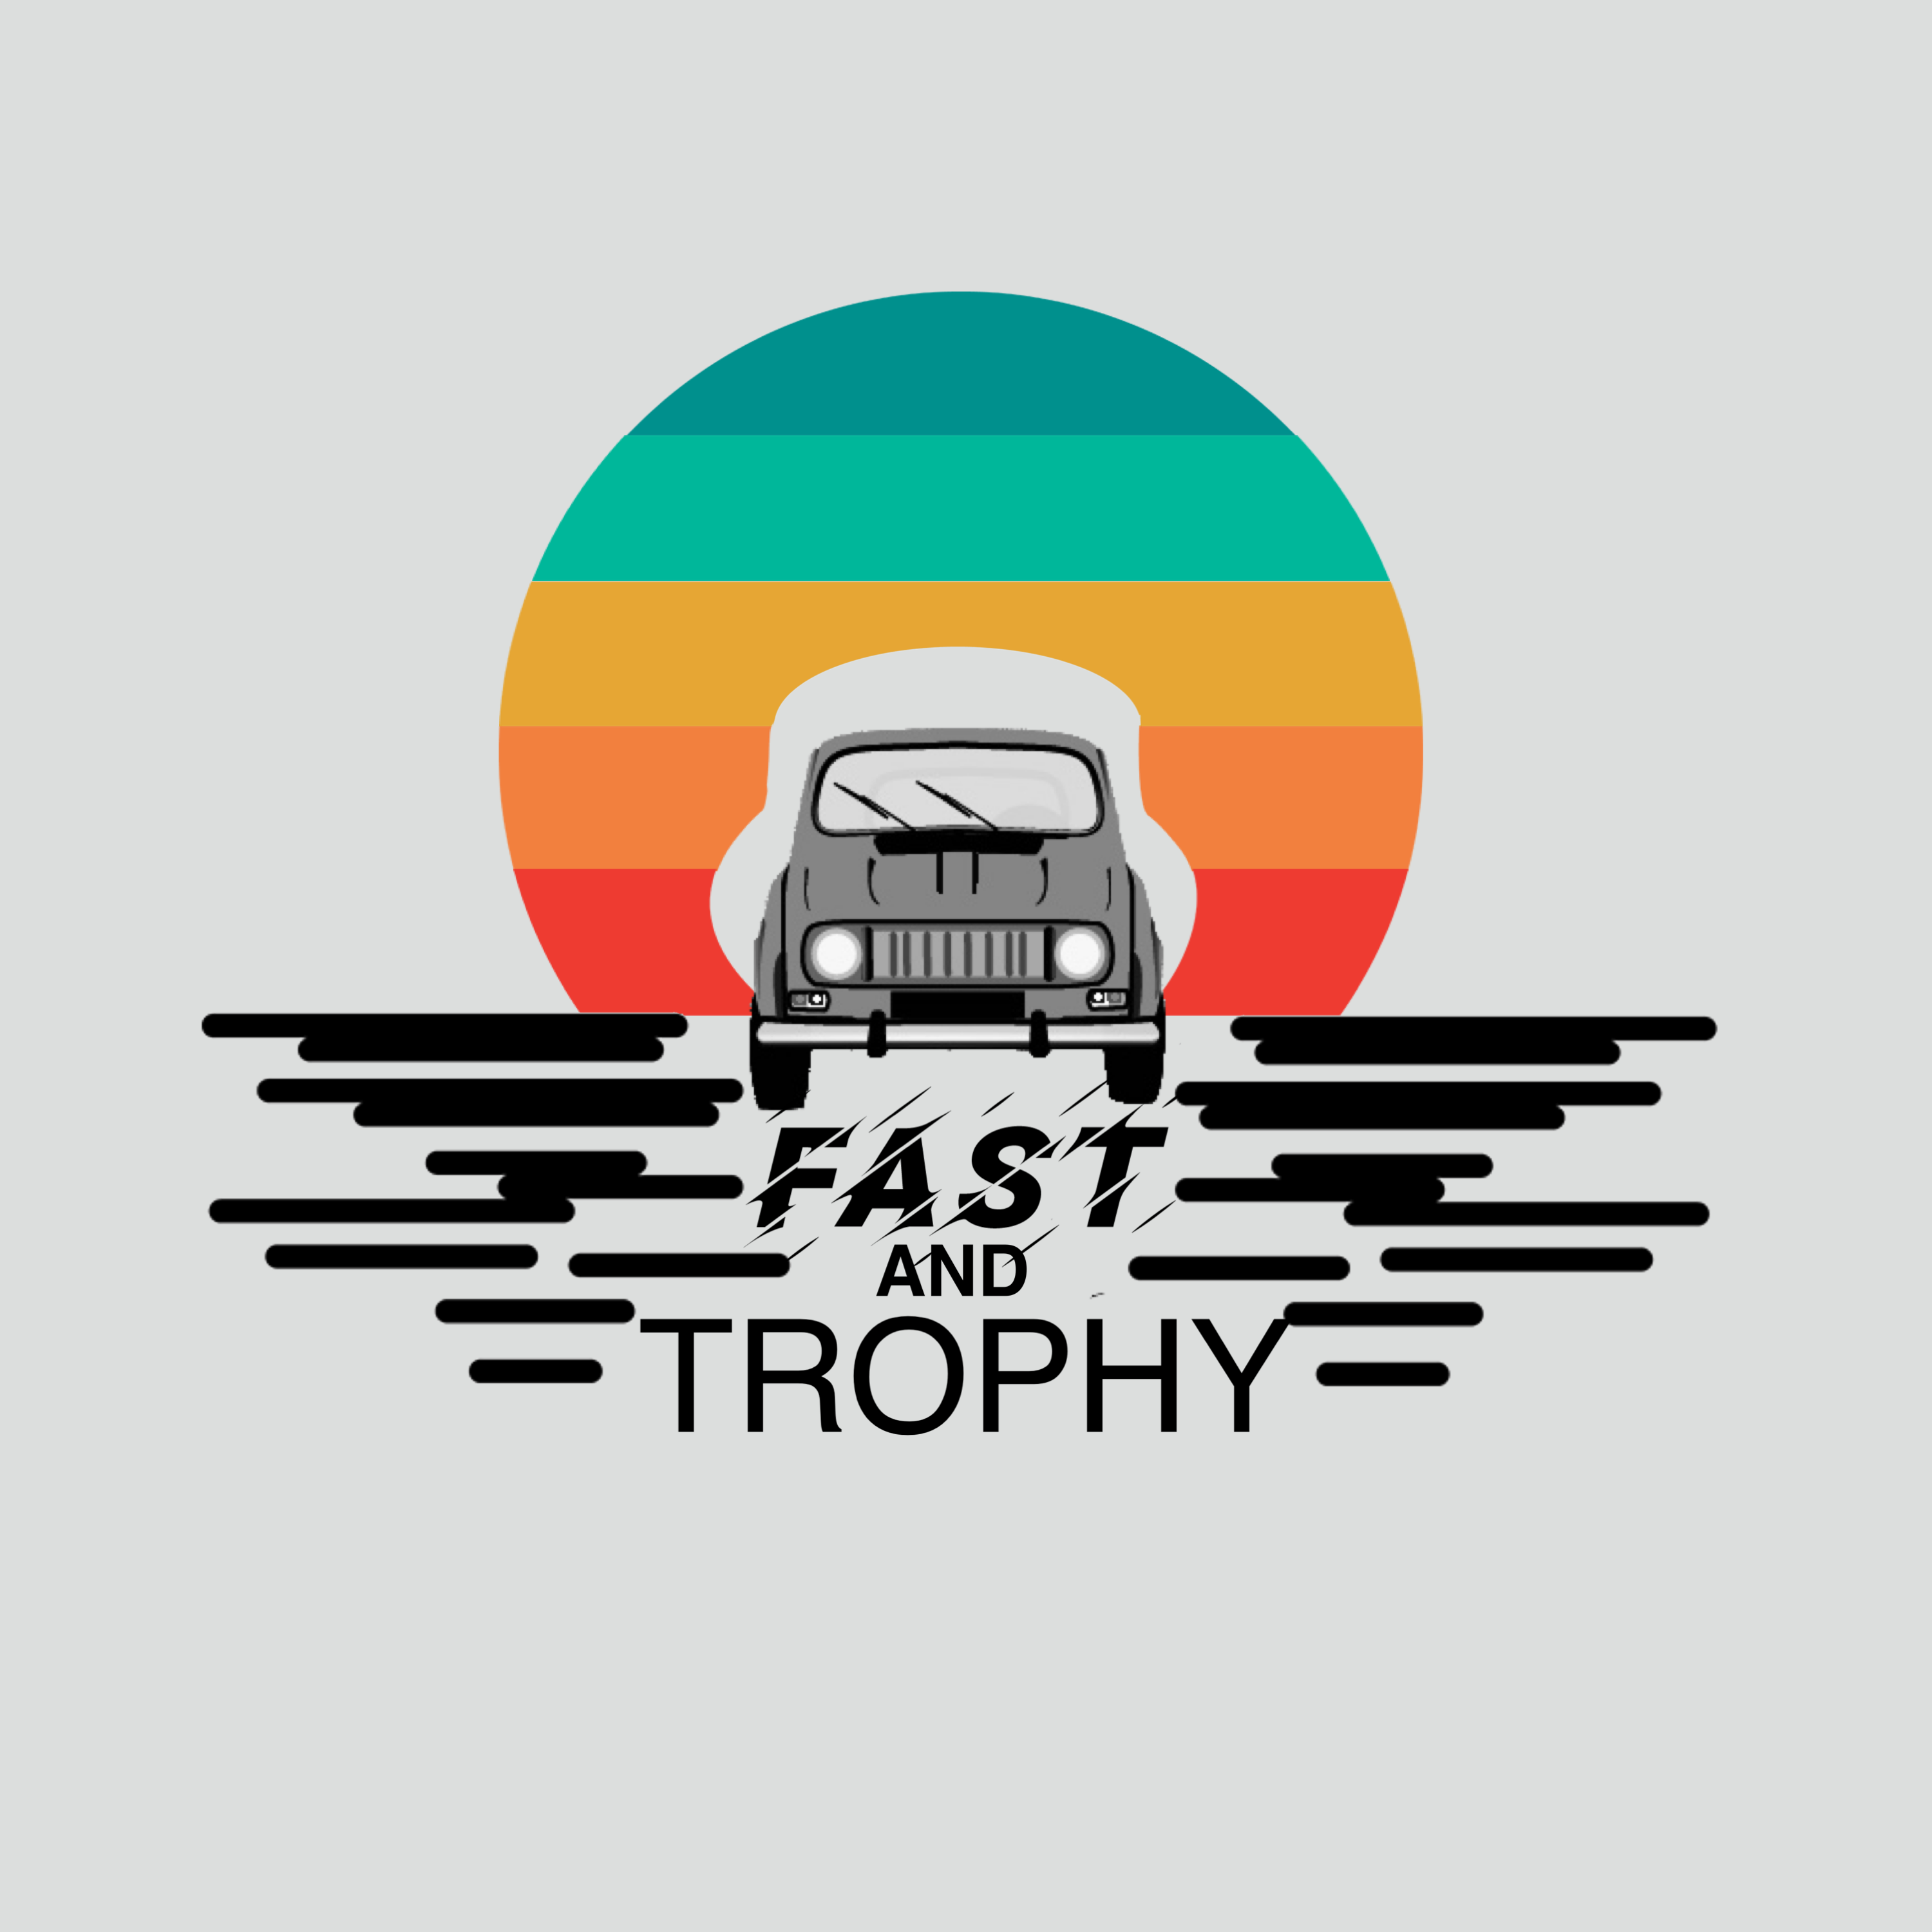 Association - FAST AND TROPHY